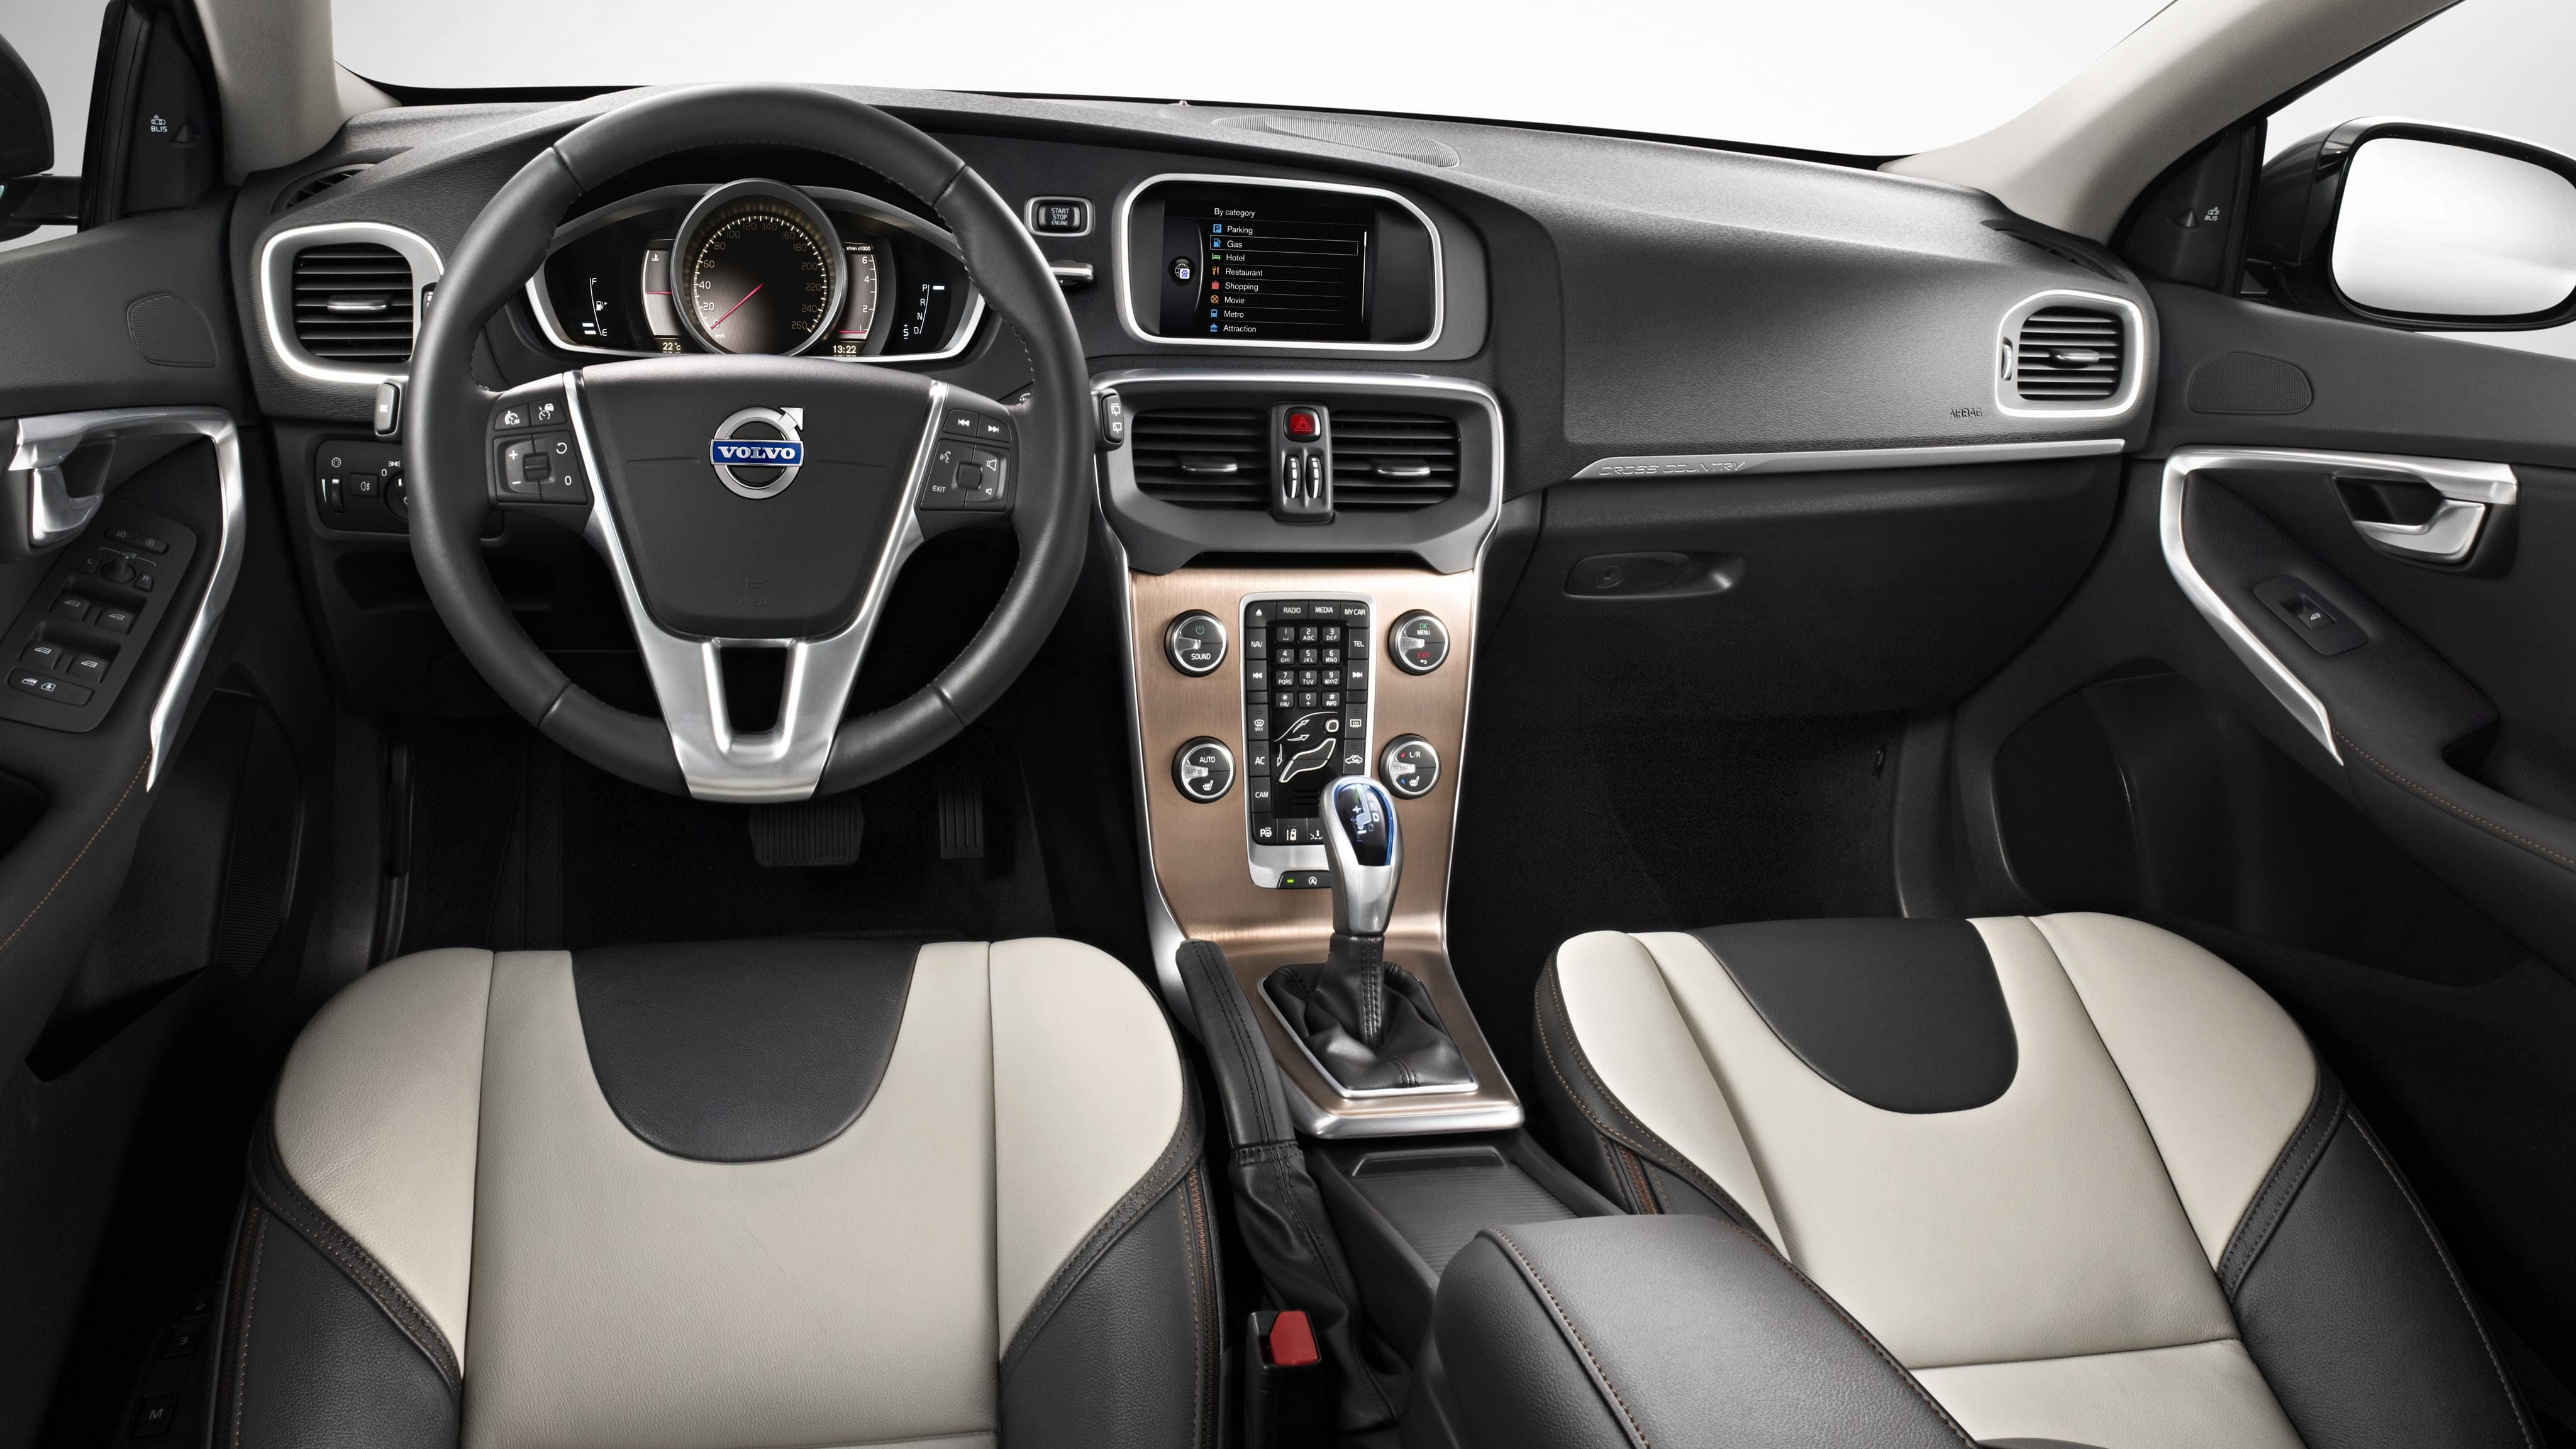 See Feature Price Of Volvo Recently Launched Xc40 Car Along With Bookings Live Uttar Pradesh